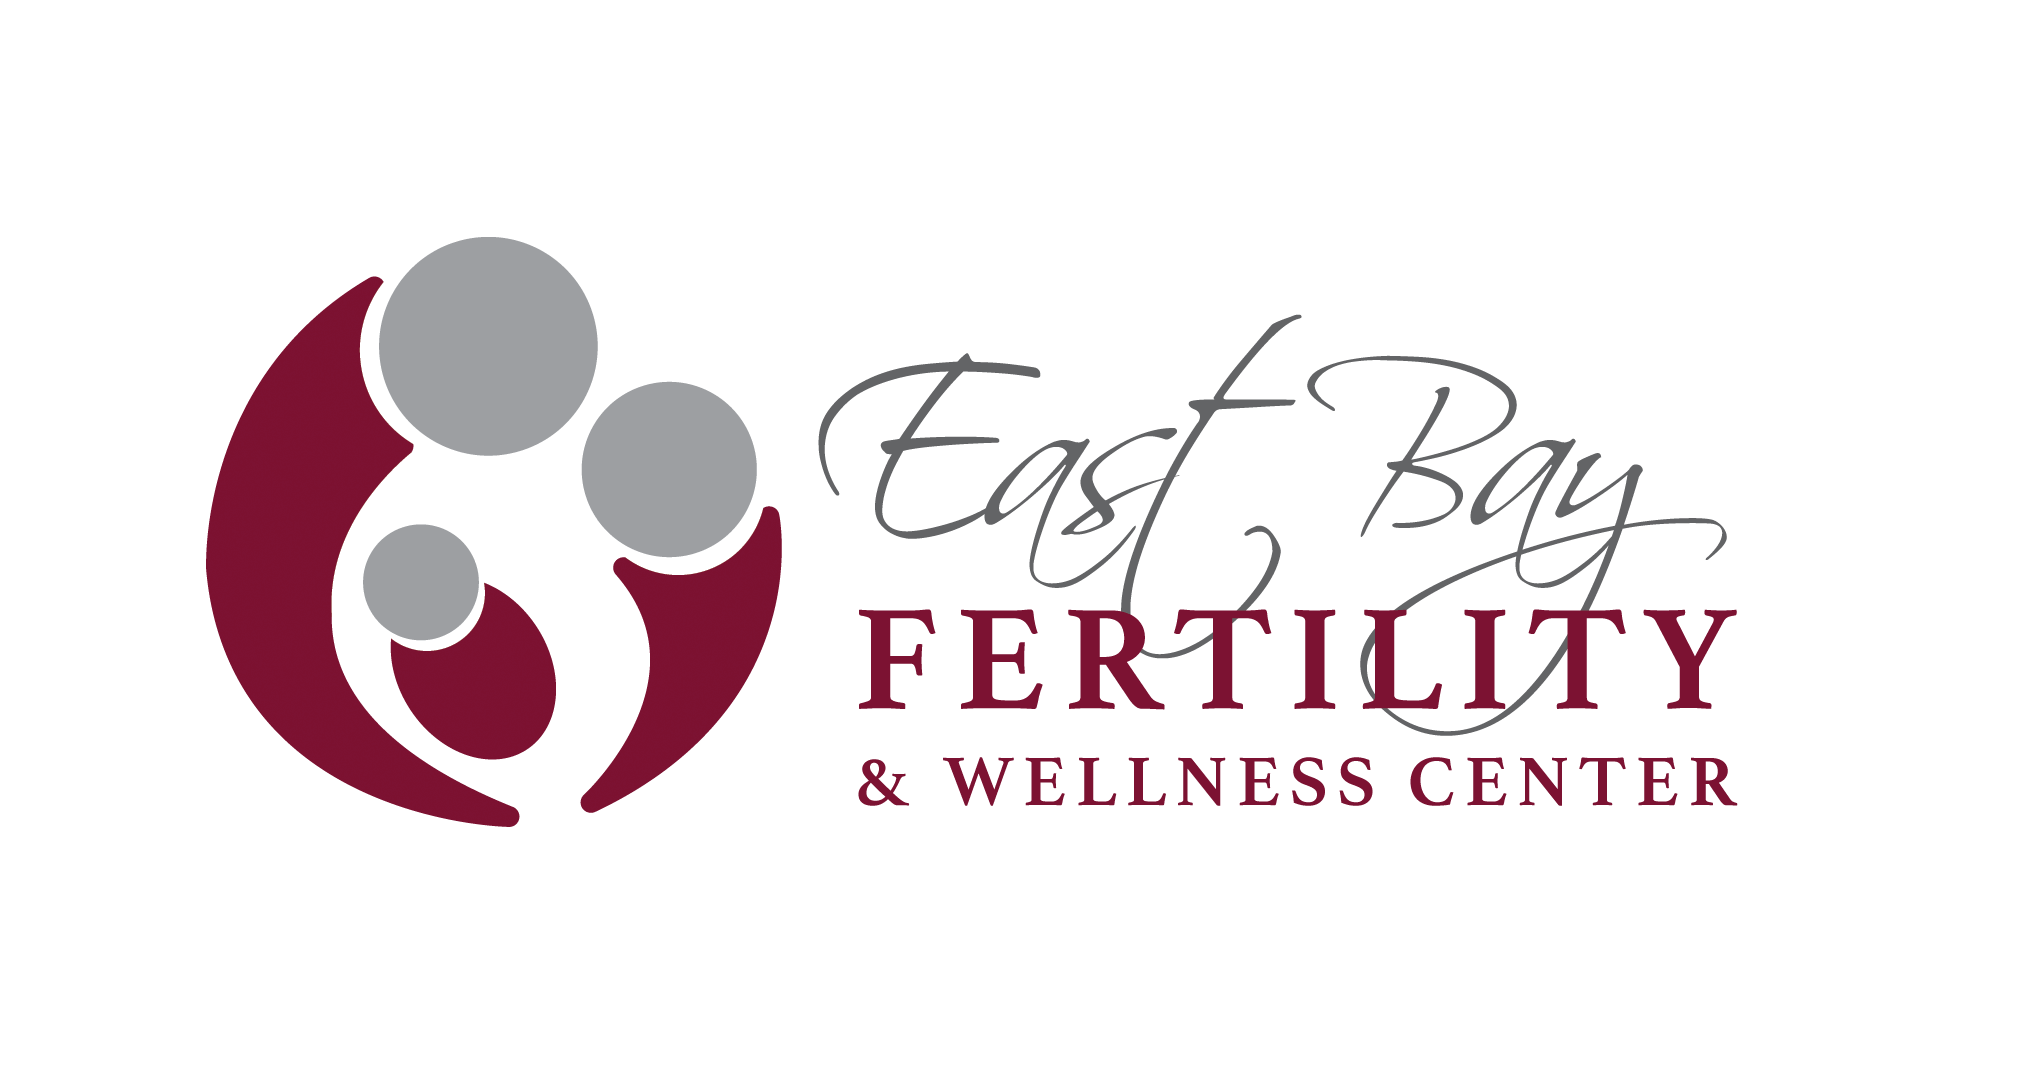 East Bay Fertility